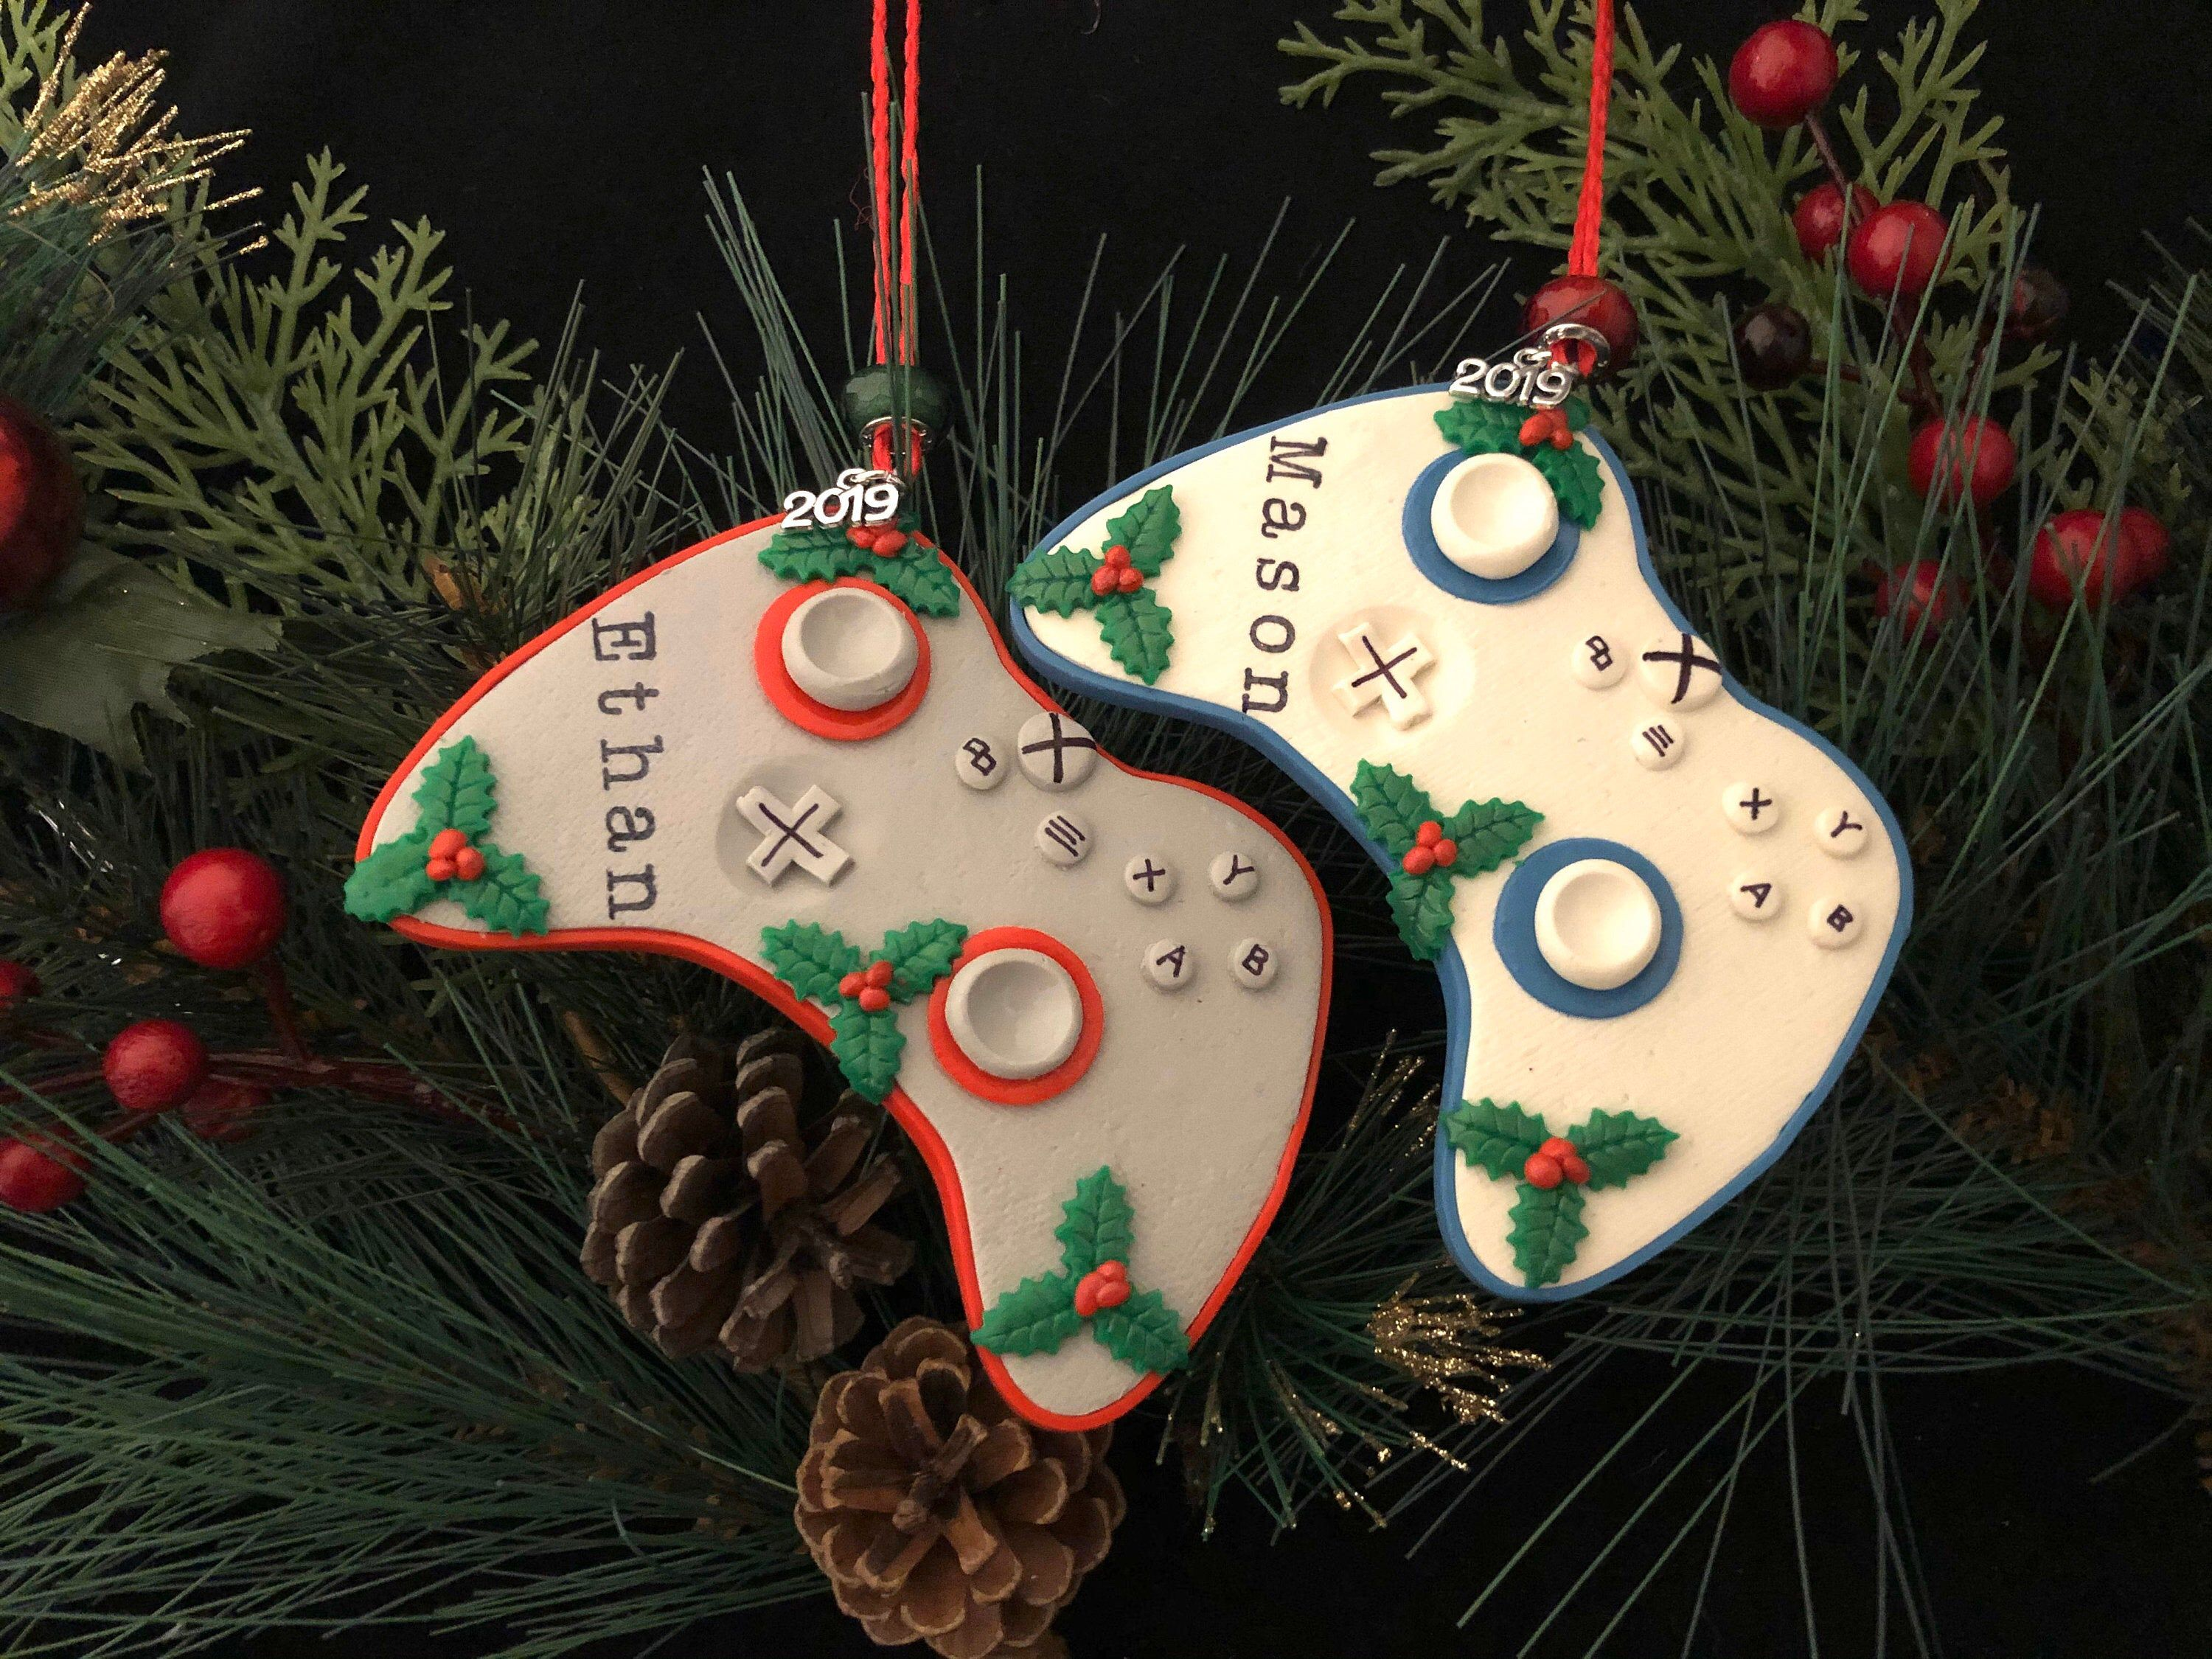 Xbox Controller Personalized Ornament 2020 Gift Tag Video Etsy In 2020 Christmas Ornaments Gifts Christmas Ornaments Personalized Christmas Ornaments